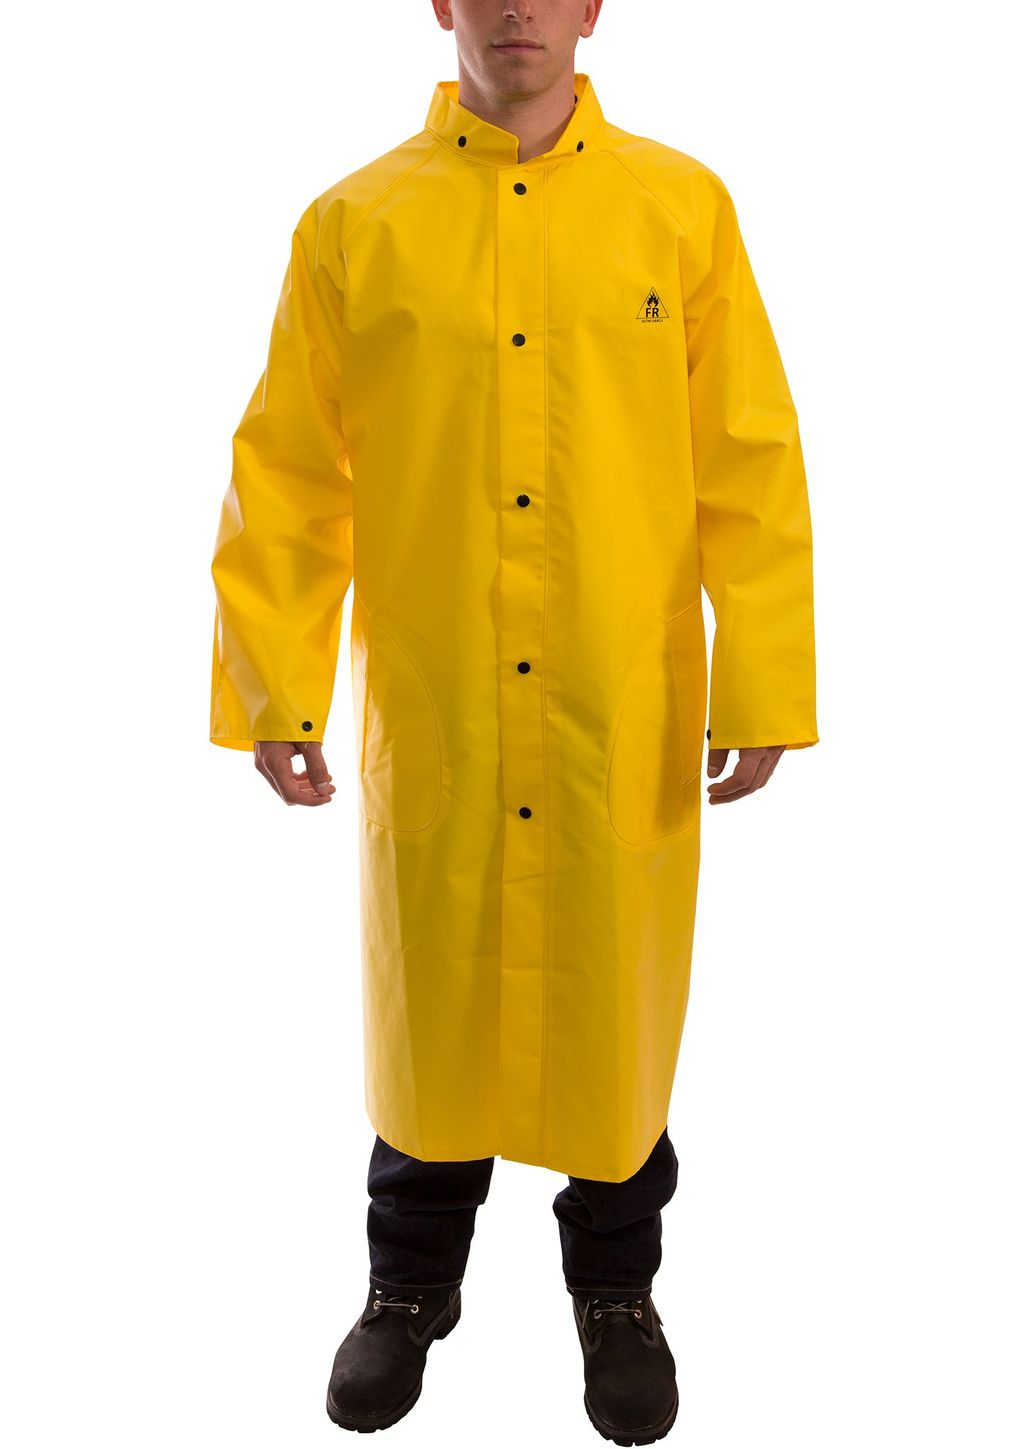 tingley-c56207-durascrim-flame-resistant-coat-pvc-coated-chemical-resistant-with-hood-snaps-48-front.jpg